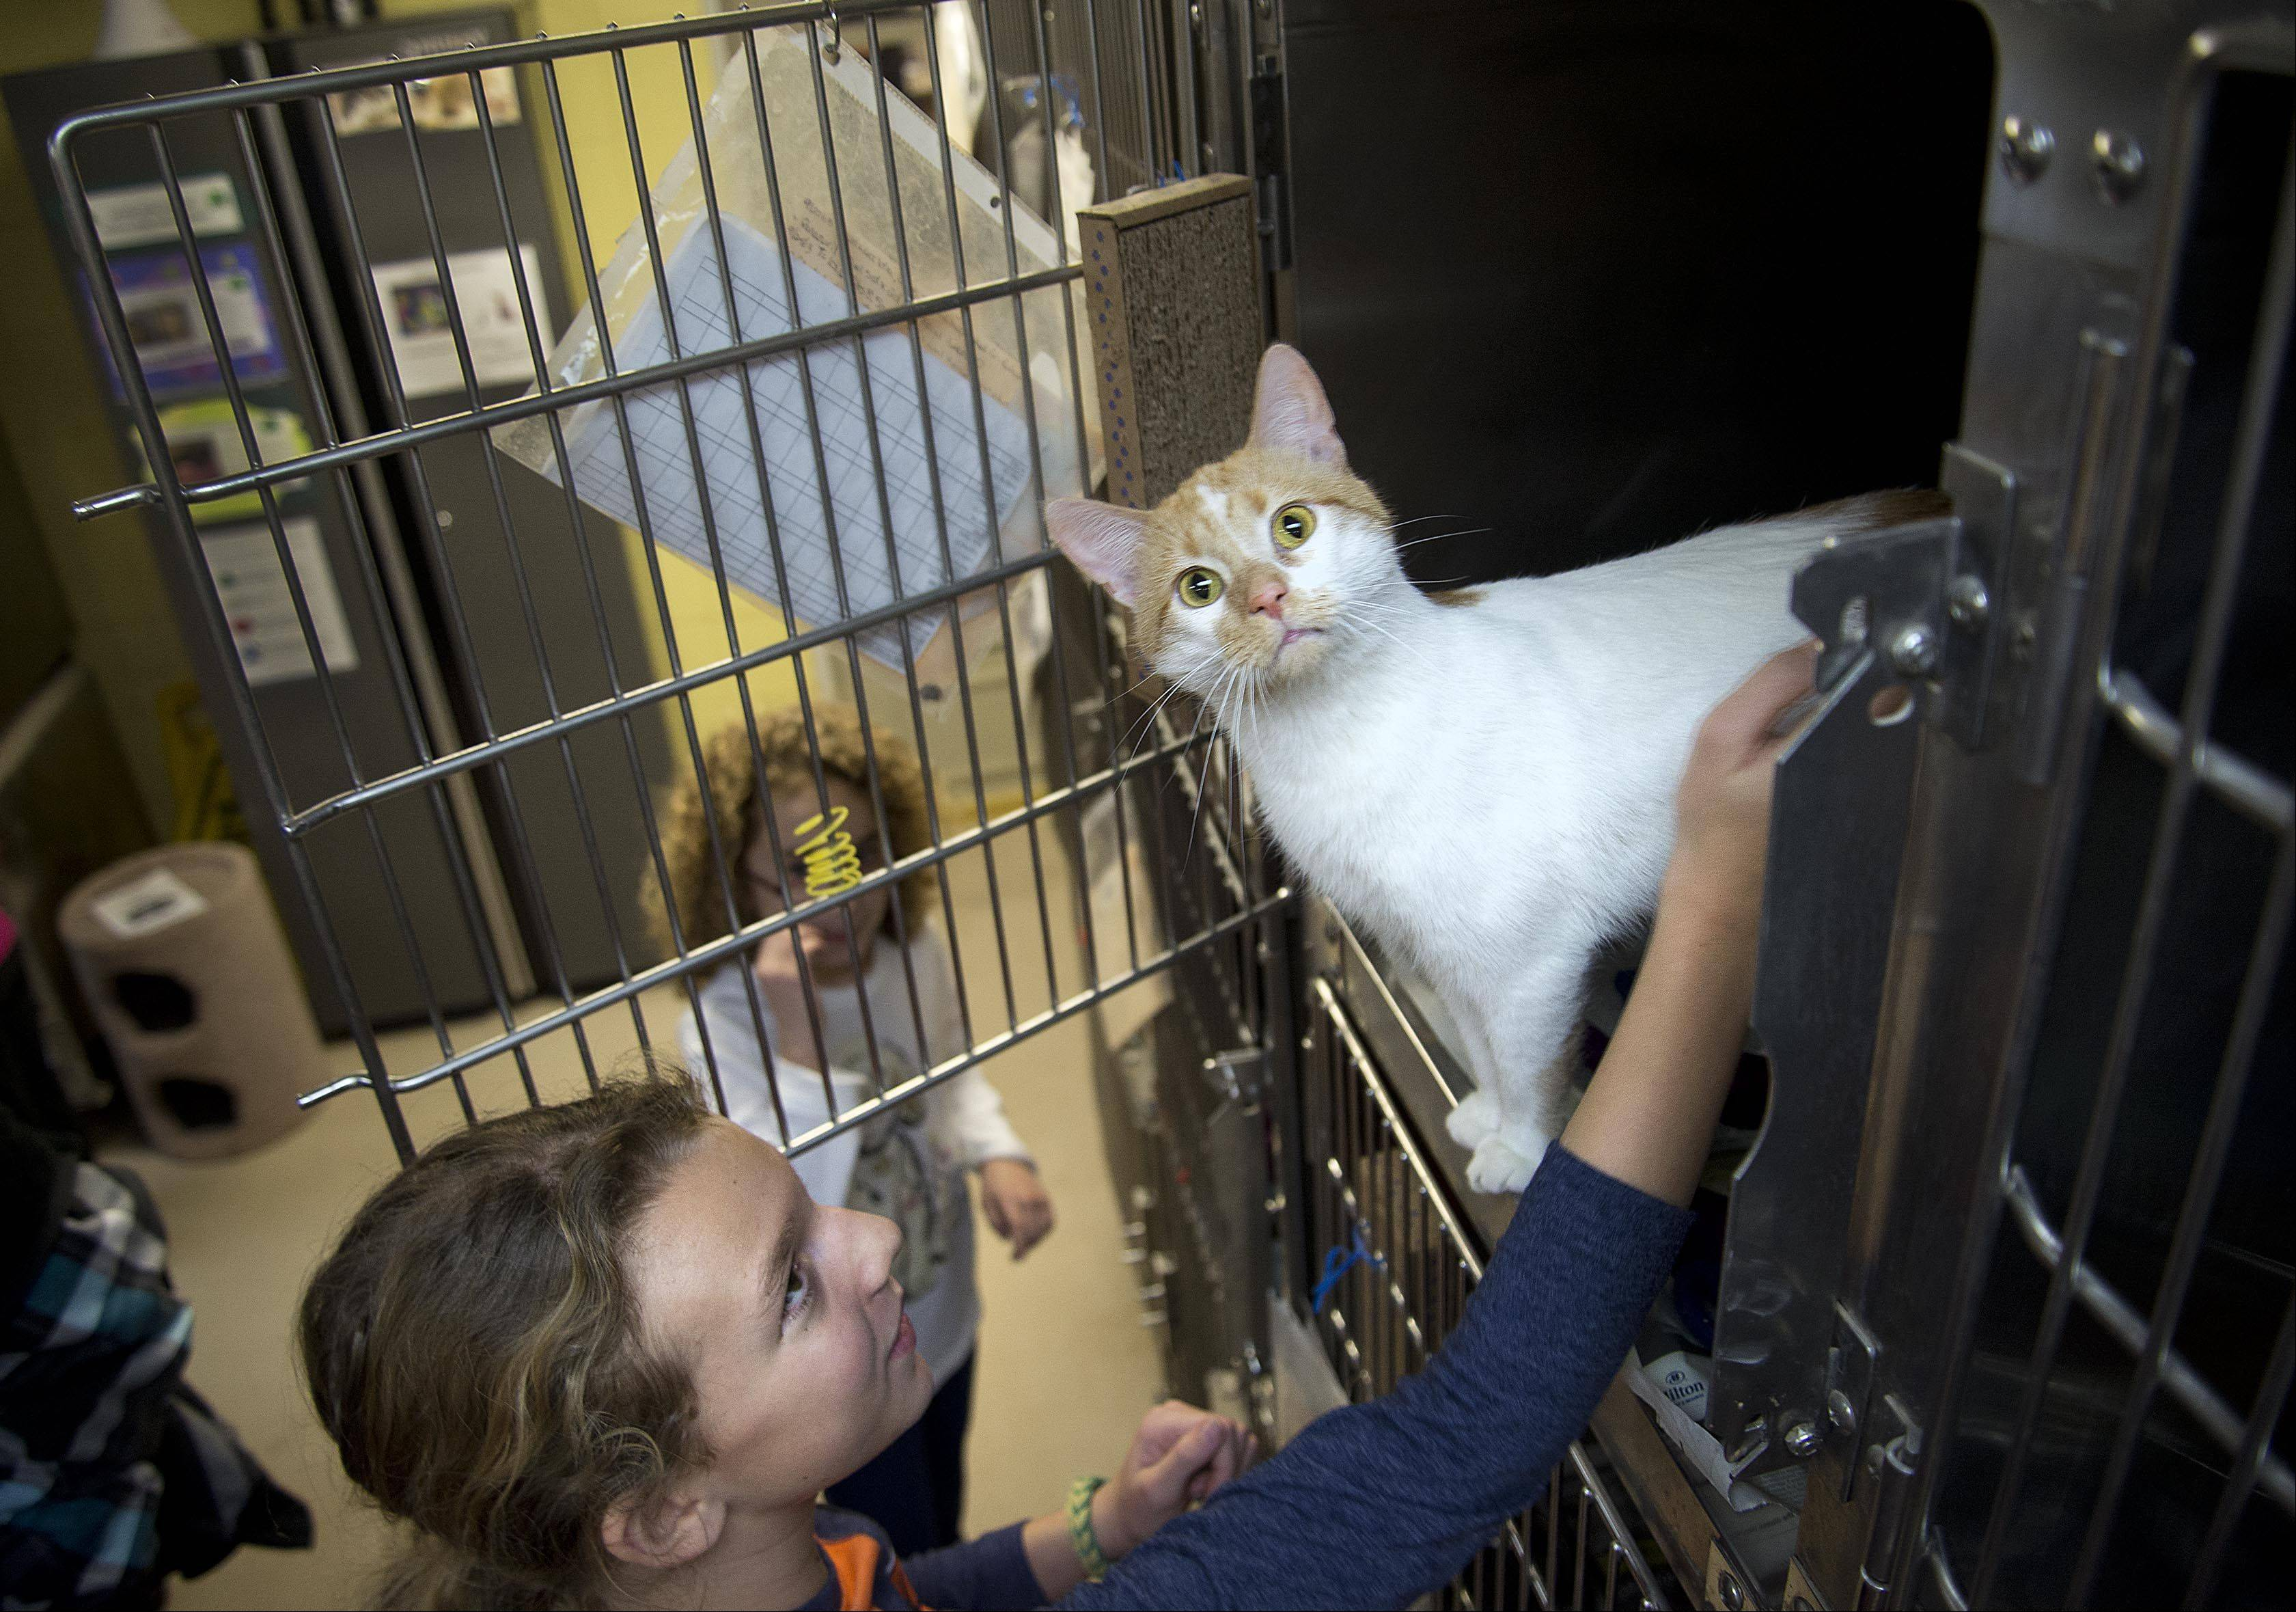 Cailey Johns, 10, of St. Charles, scratches a cat Sunday during the Santa Paws Workshop For Kids at the Anderson Animal Shelter in South Elgin. �I like helping all the animals,� she said. �I think it makes their day.�